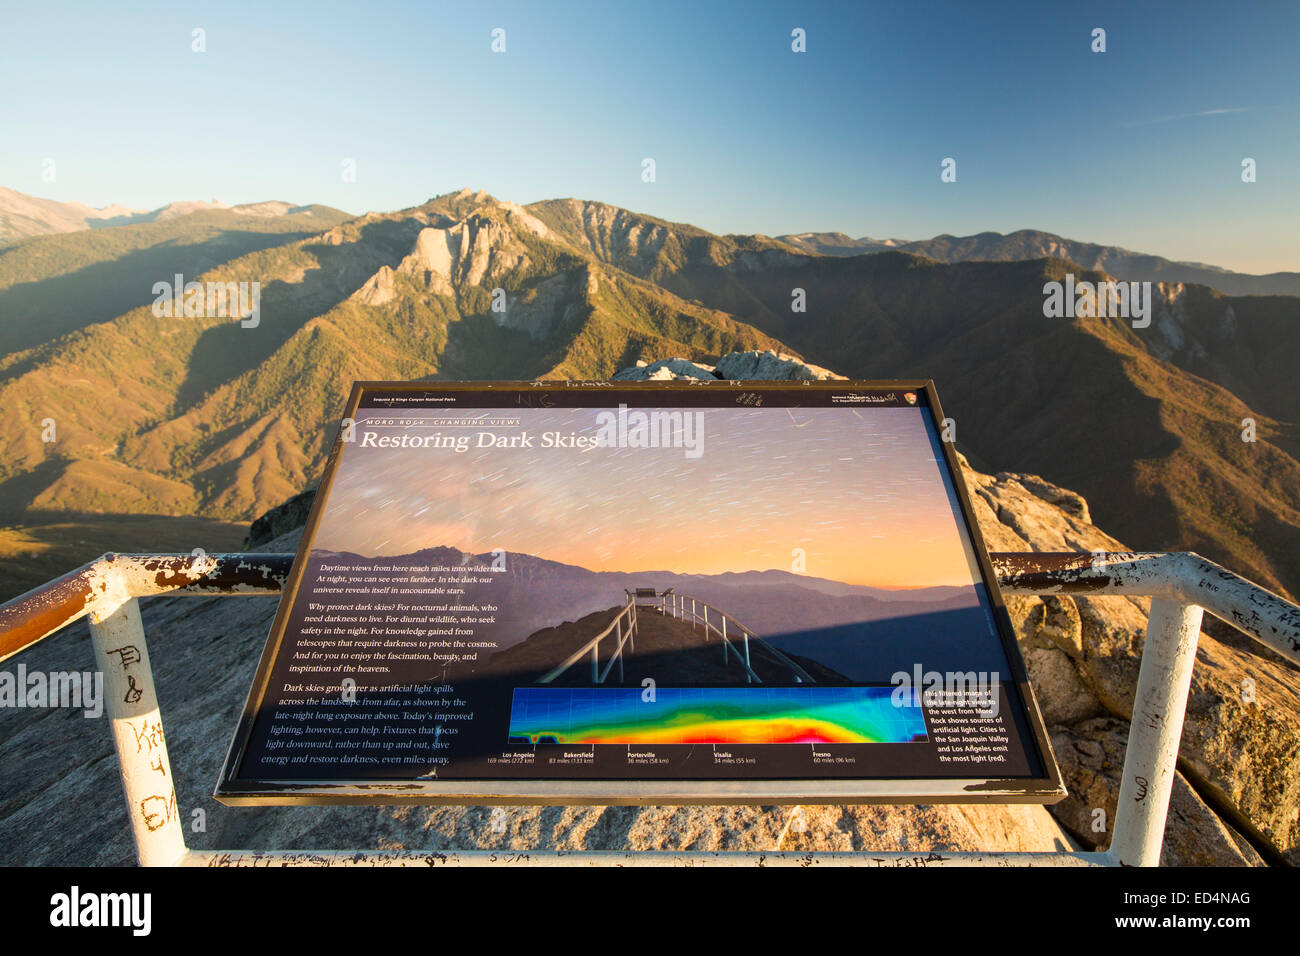 A sign about dark skies on the summit of Moro Rock a granite outcrop viewpoint in the Sequoia National Park, Yosemite, - Stock Image